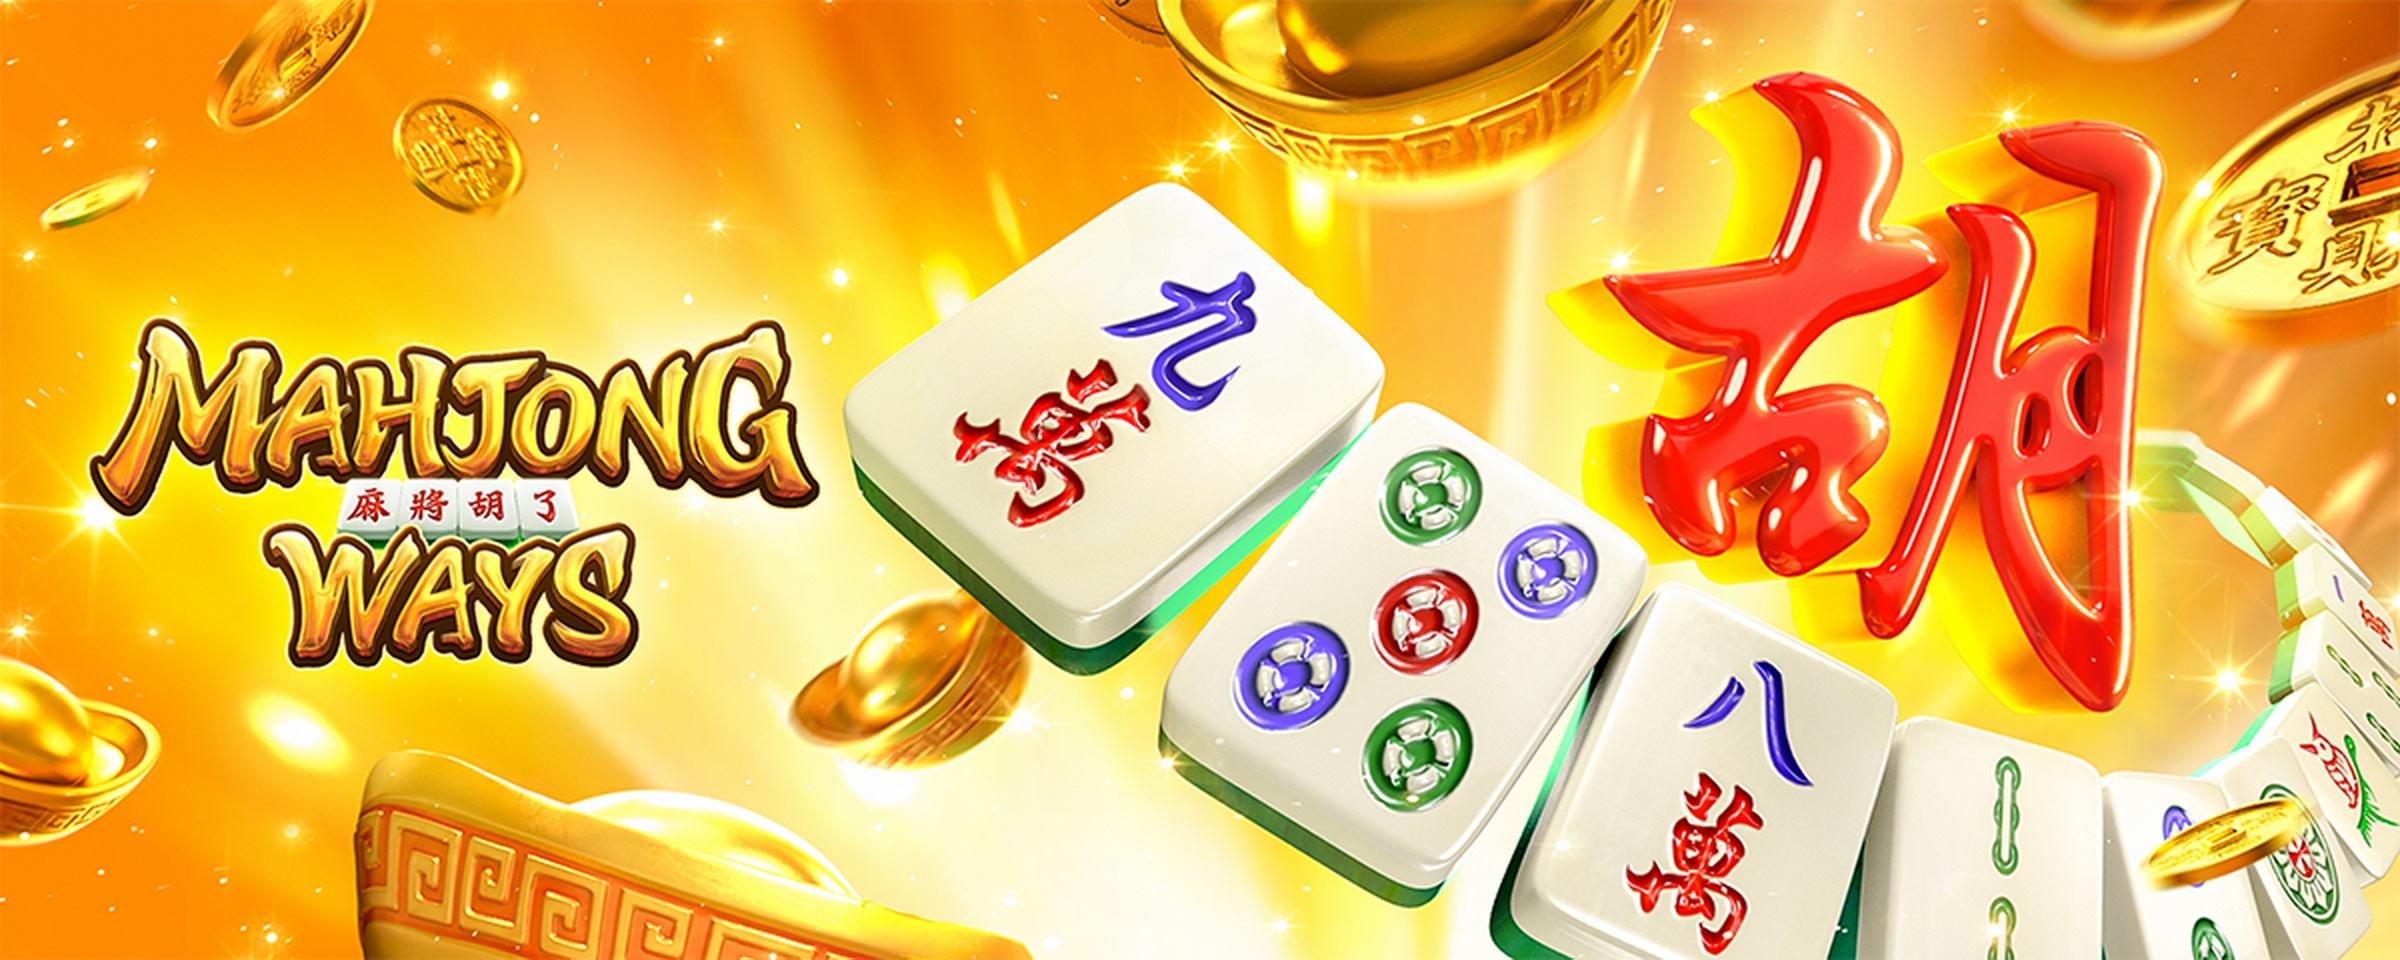 The Mahjong Ways Online Slot Demo Game by PG Soft